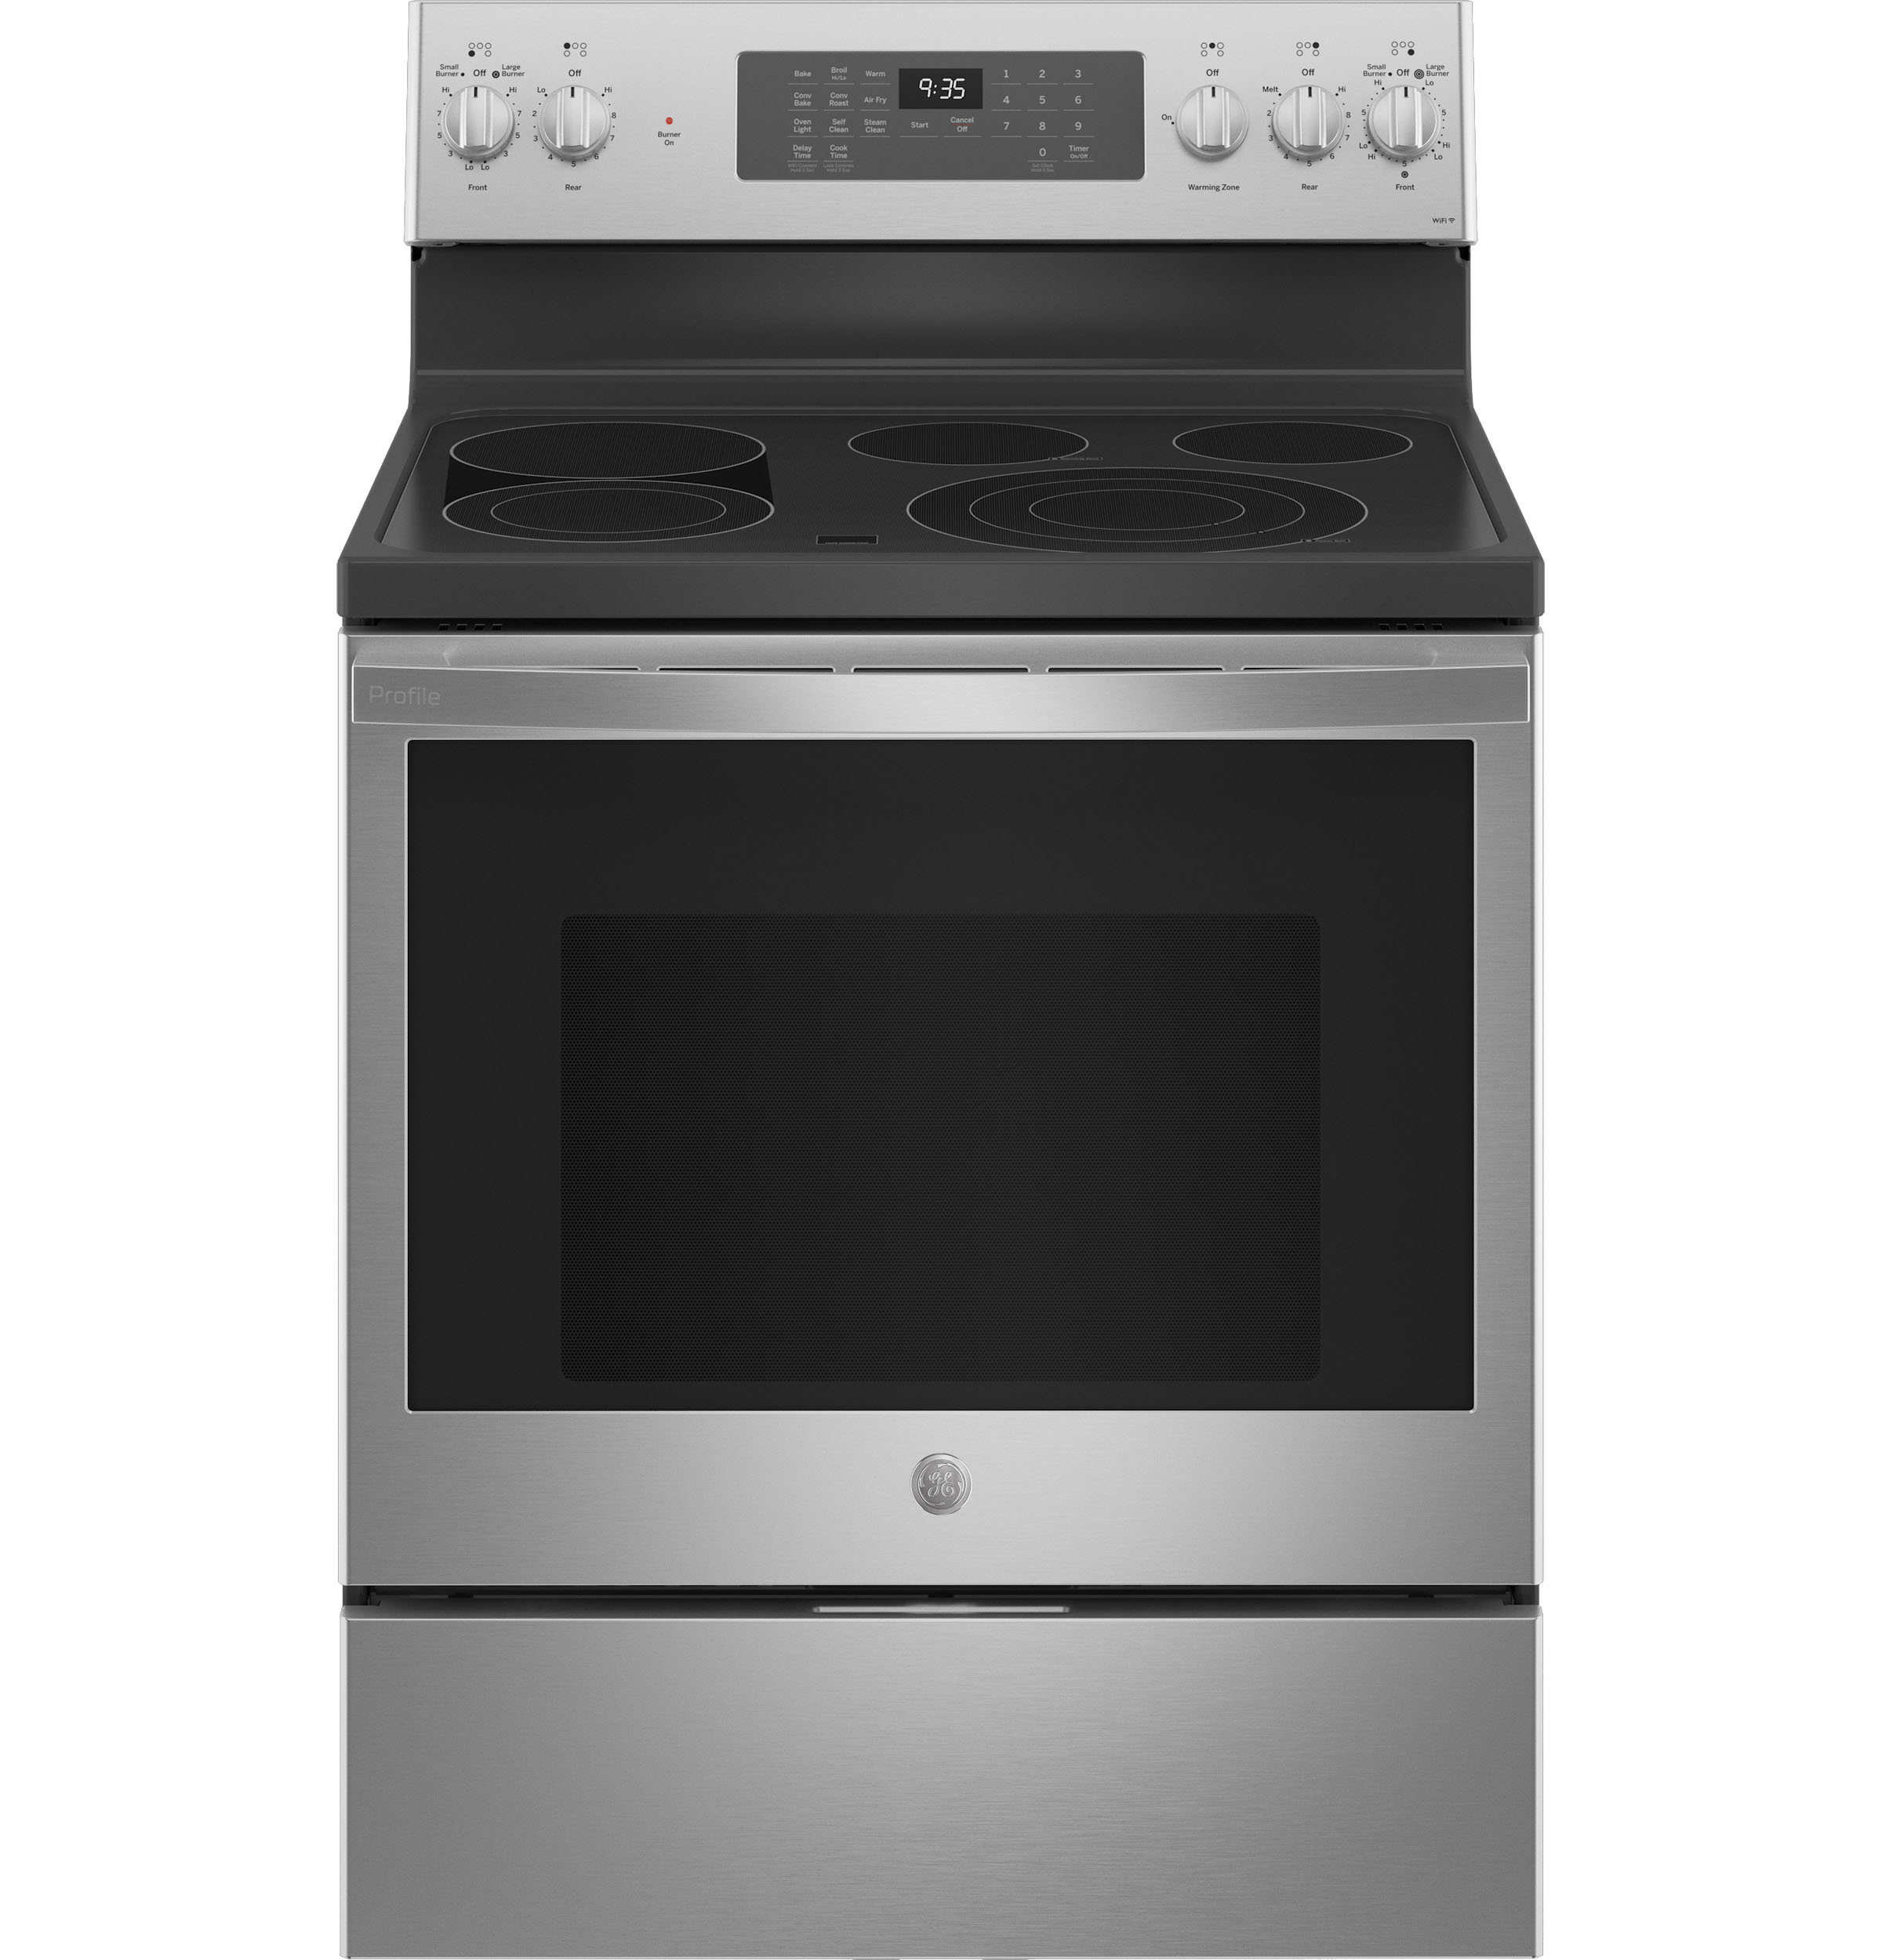 "GE Profile GE Profile™ 30"" Smart  Free-Standing Electric Convection Fingerprint Resistant Range with Air Fry"